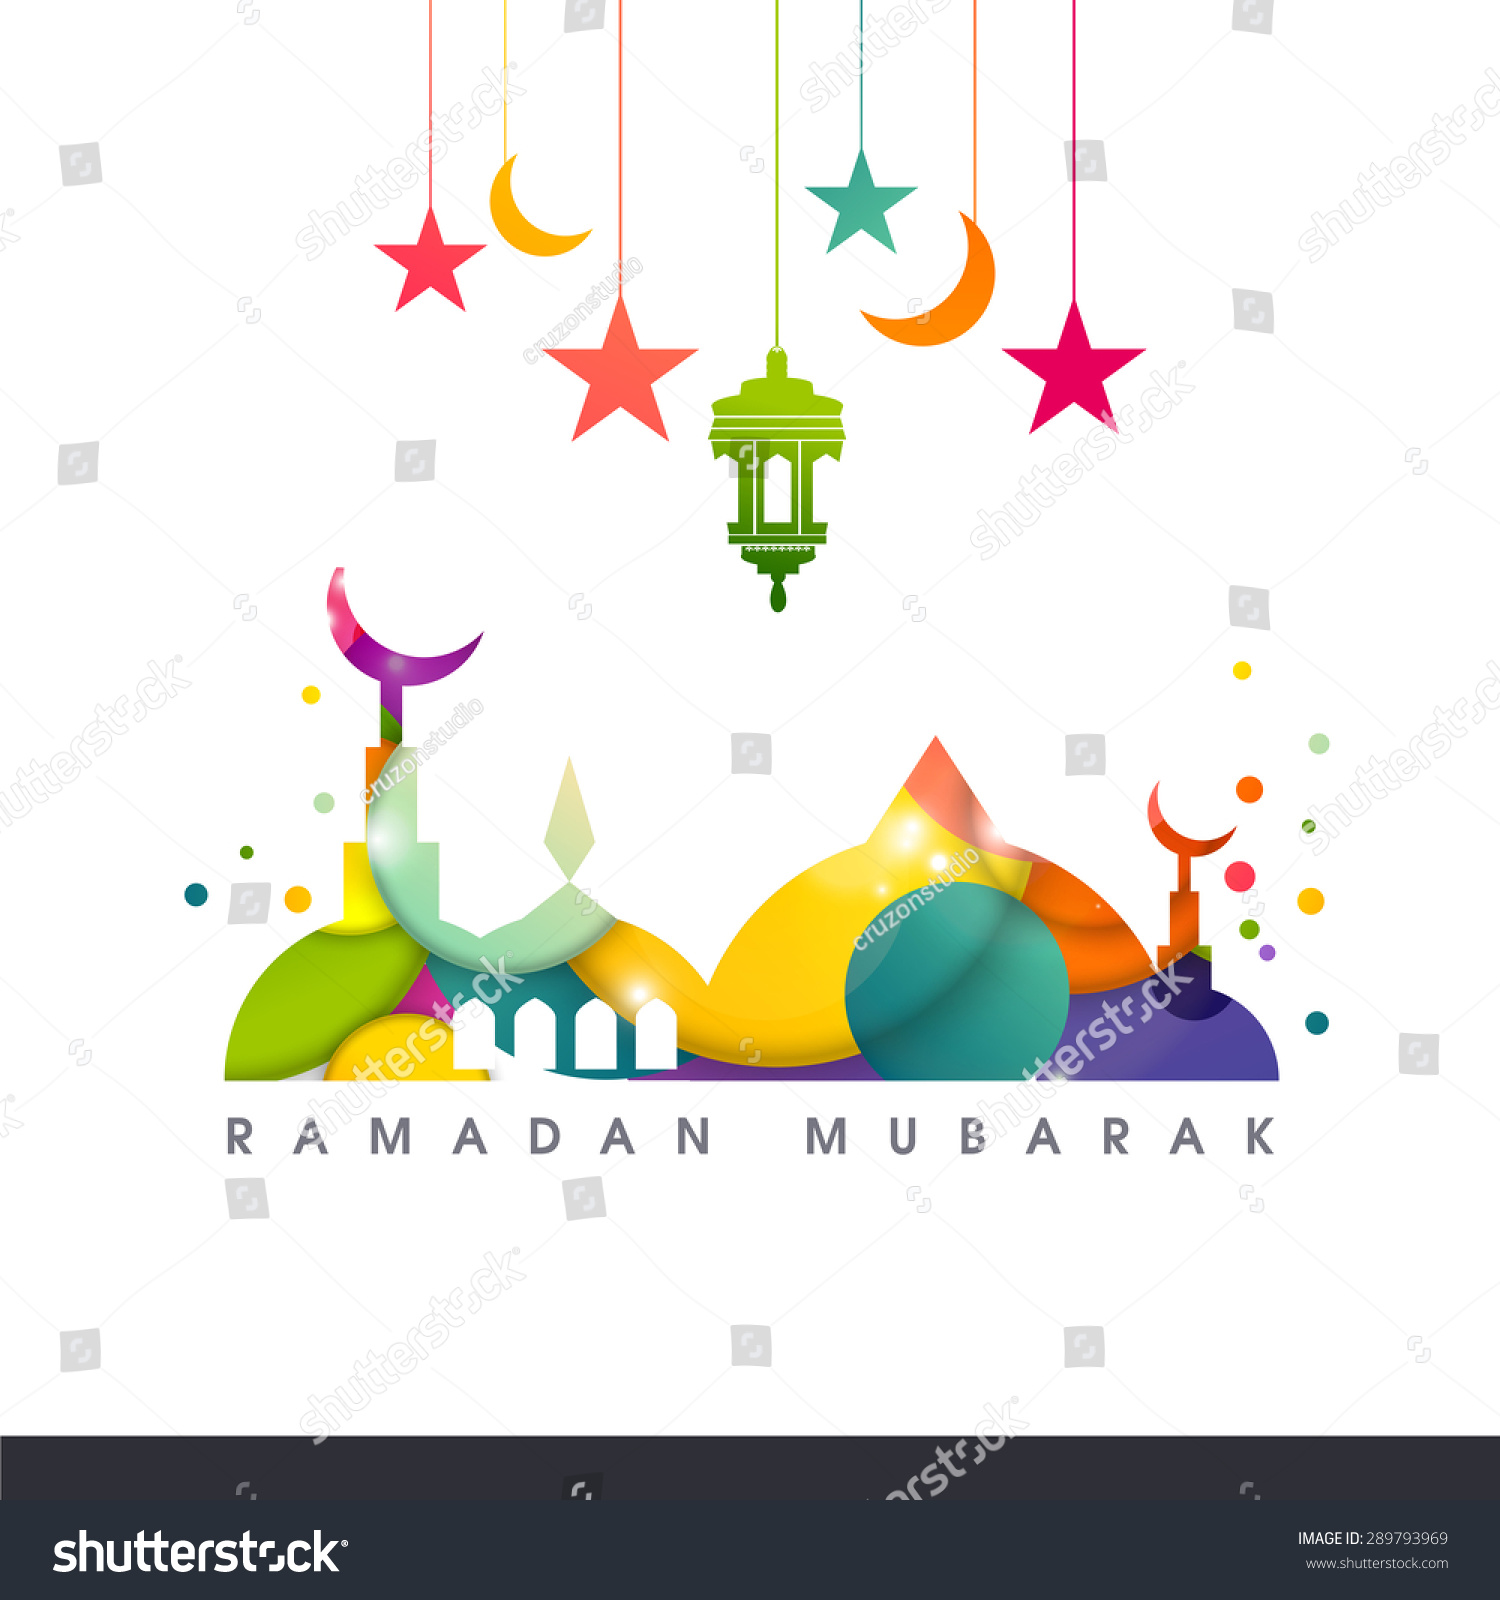 Vector colorful design for Eid and Ramdan kareem festival of Muslim community